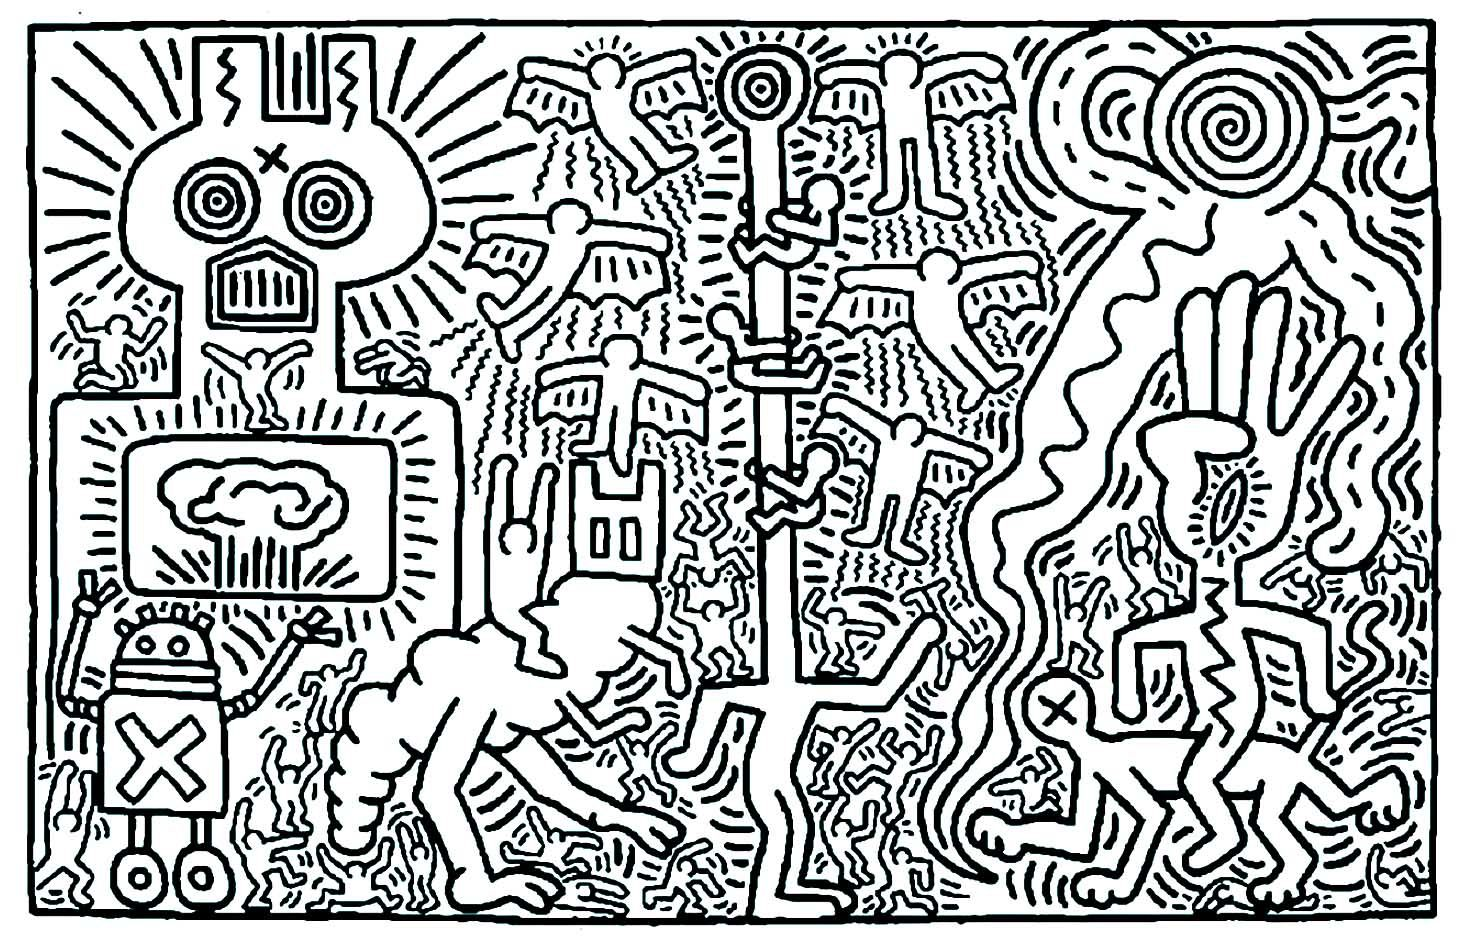 Keith haring 2 - Pop Art Coloring Pages for Adults - Just ...